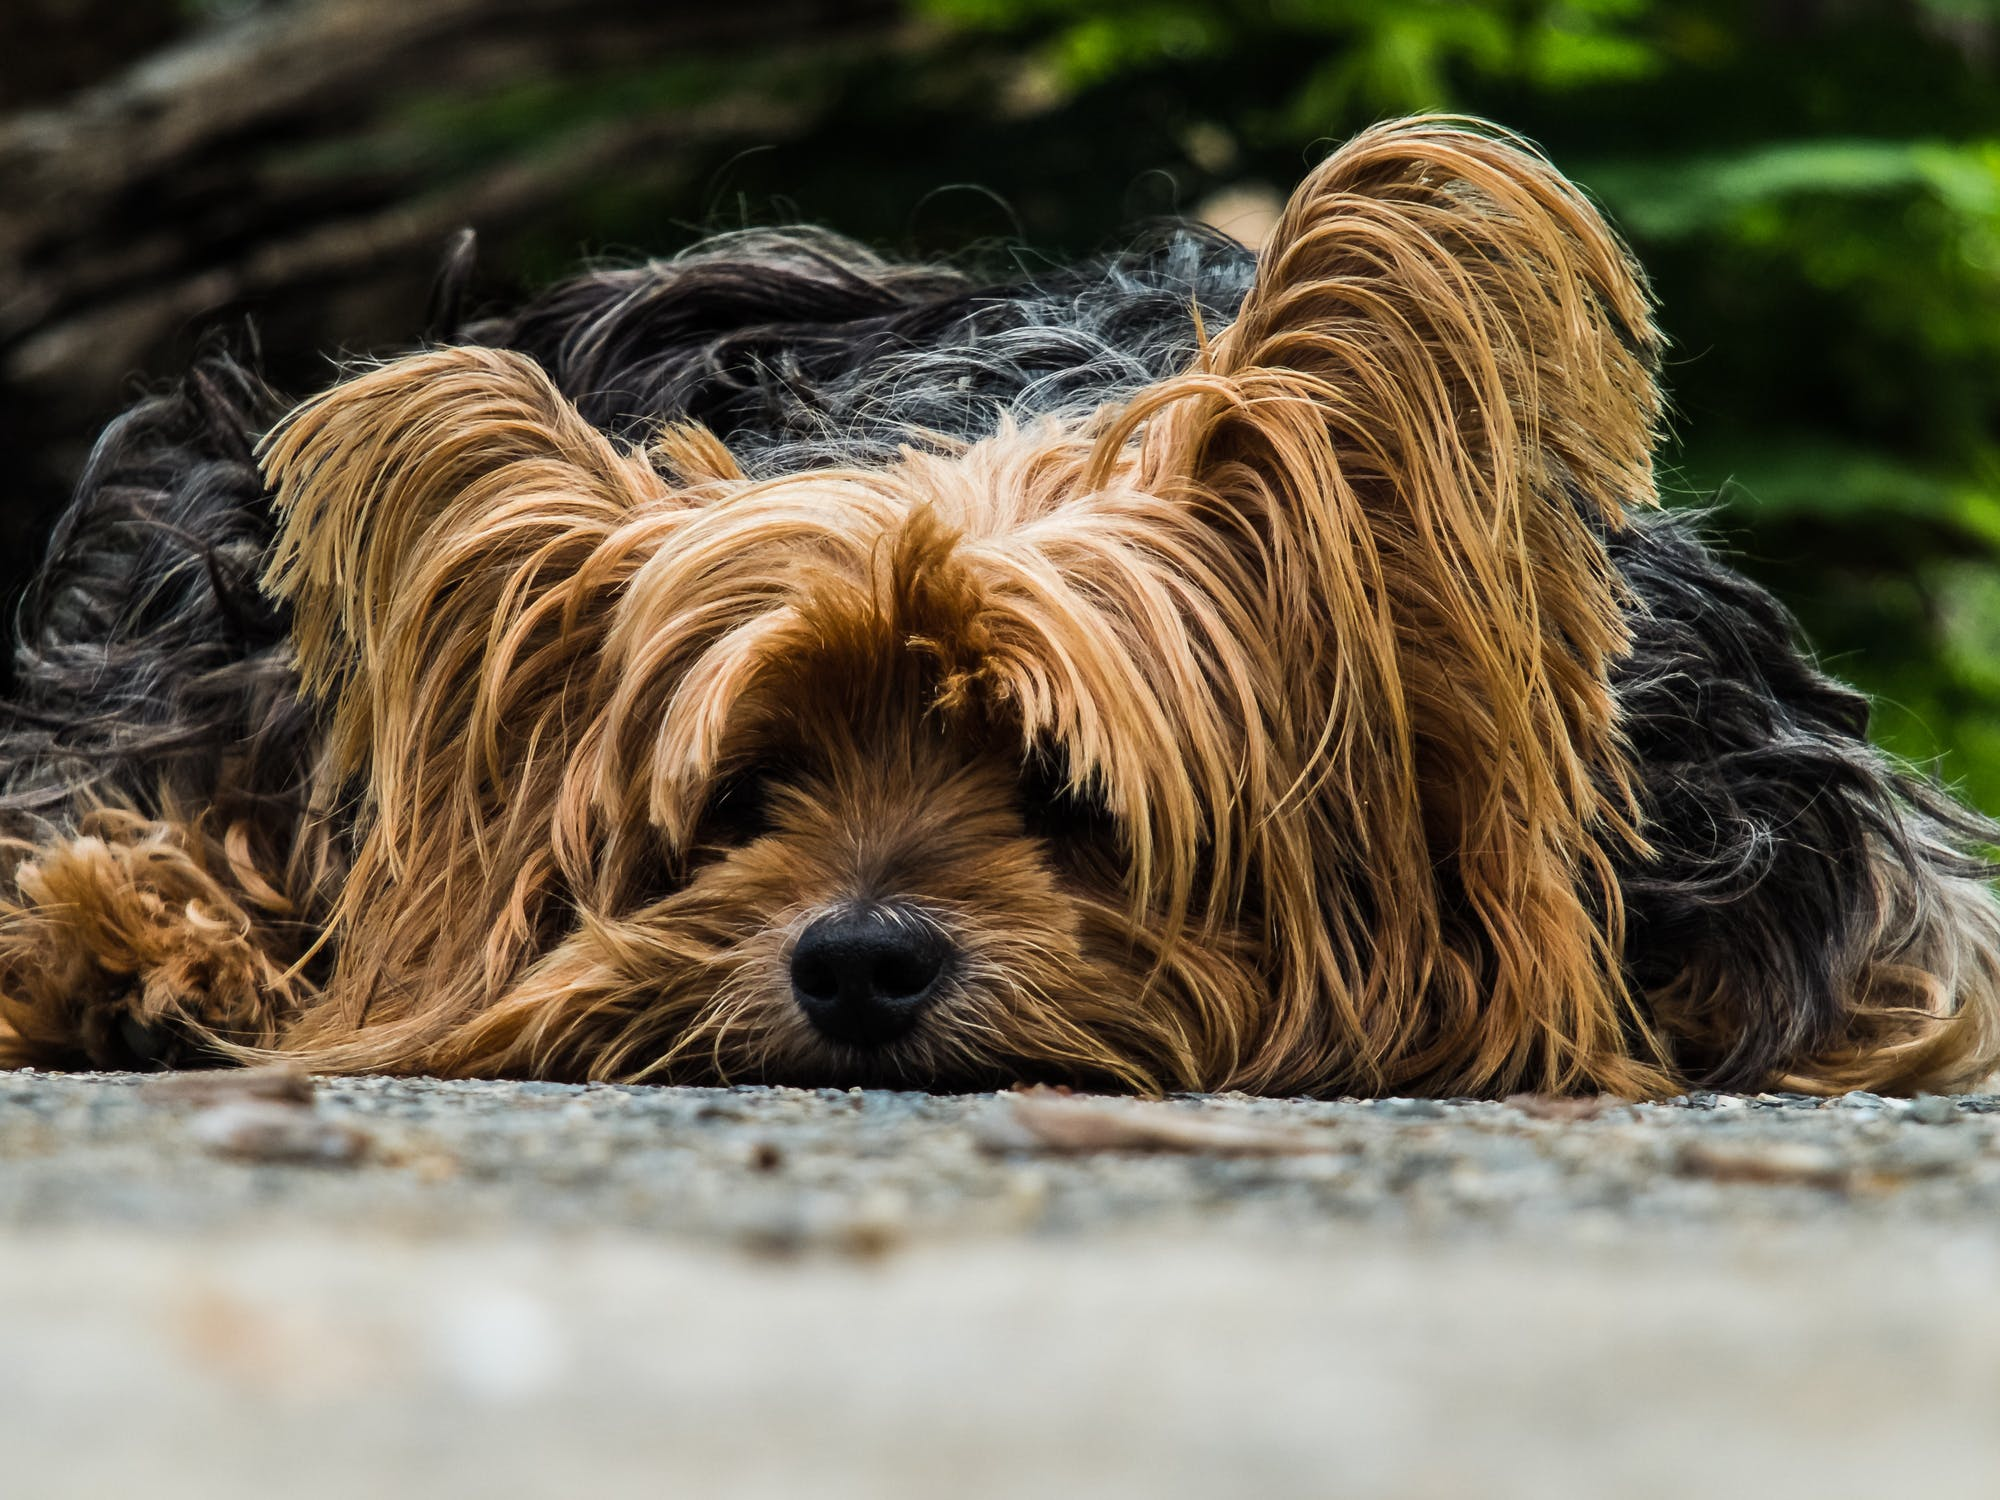 dog-yorkshire-terrier-lazy-dog-65594.jpeg